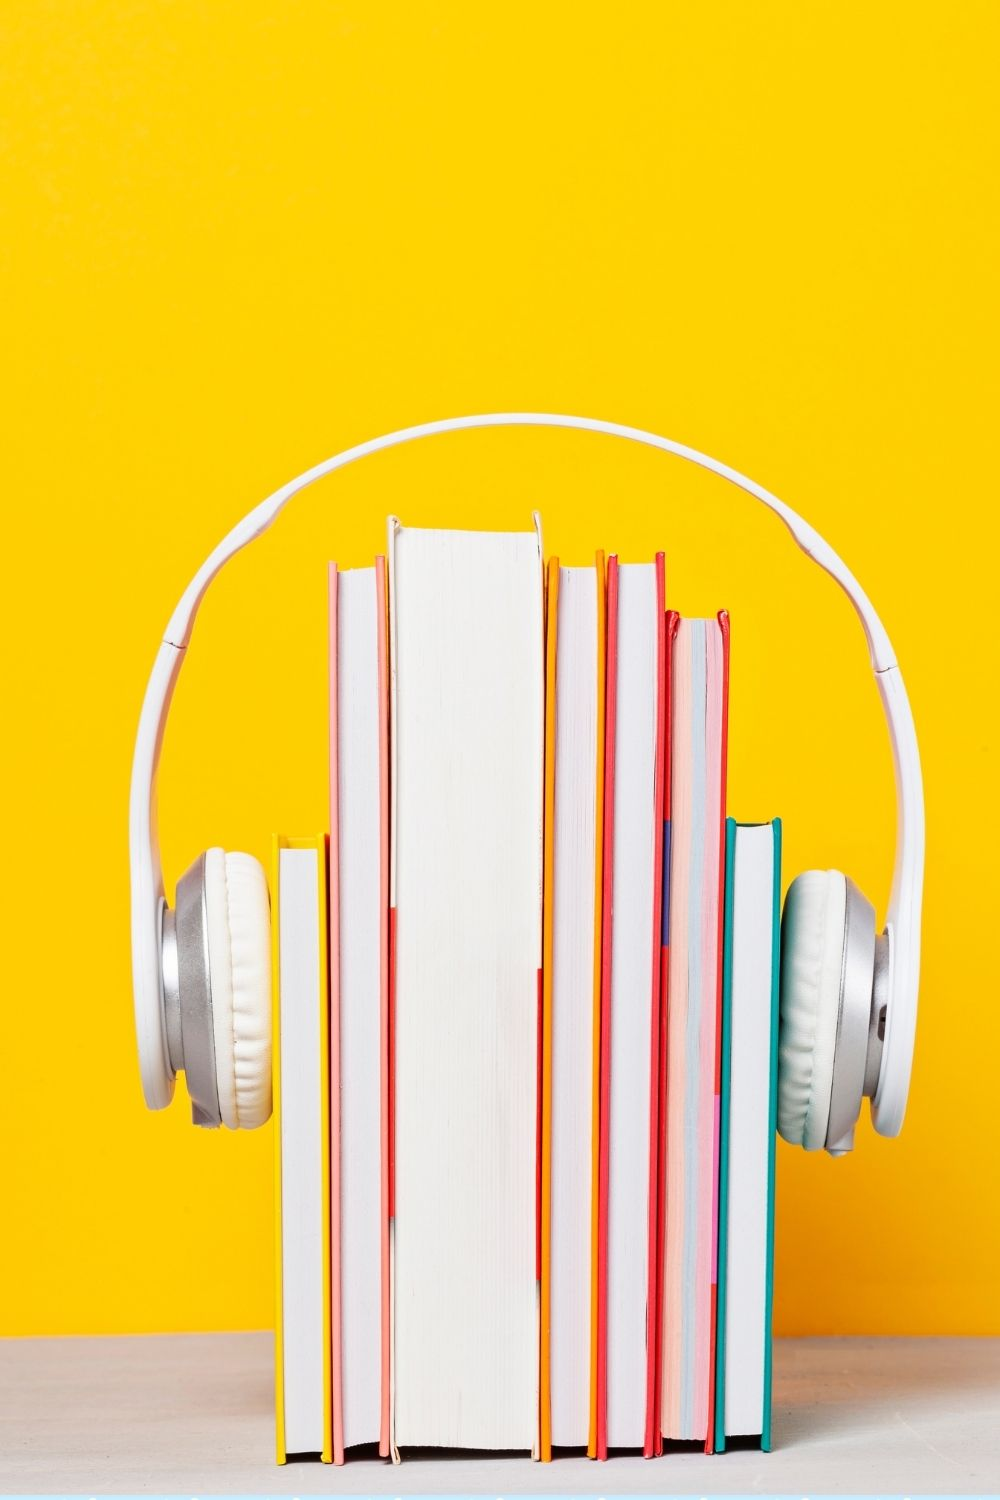 12 Best Times to Listen to Audiobooks